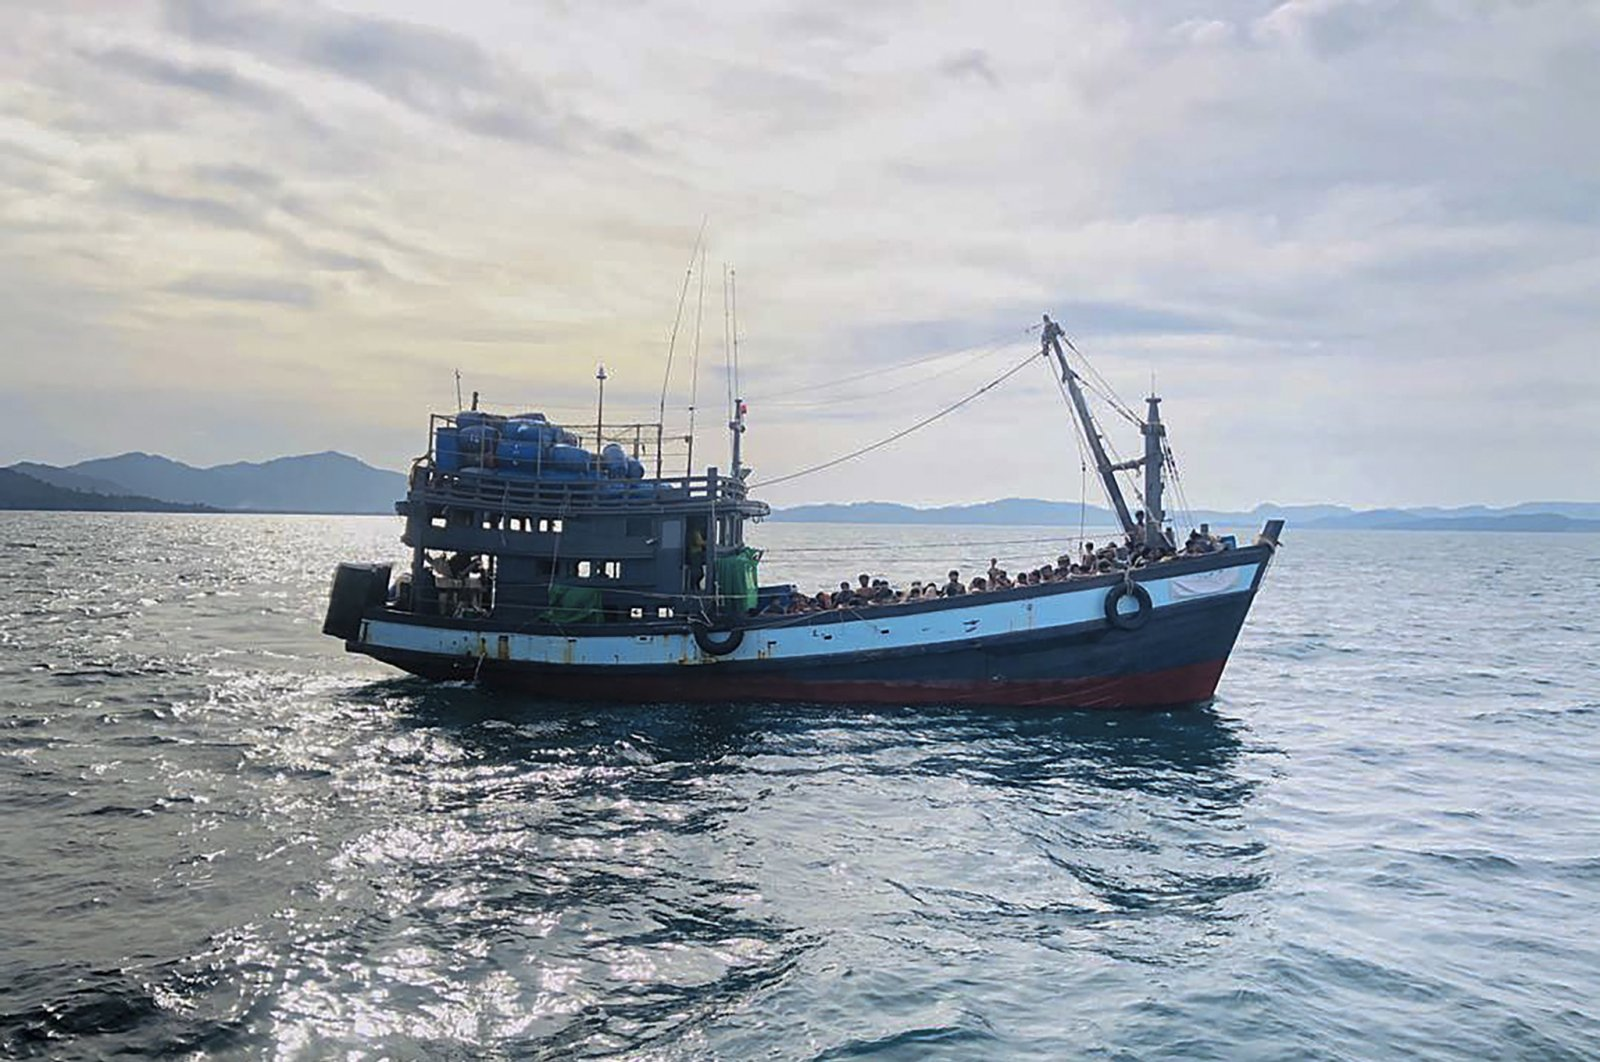 A wooden boat carrying suspected Rohingya migrants are detained in Malaysian territorial waters off the island of Langkawi, in the state of Kedah, Malaysia, April 5, 2020. (EPA Photo)